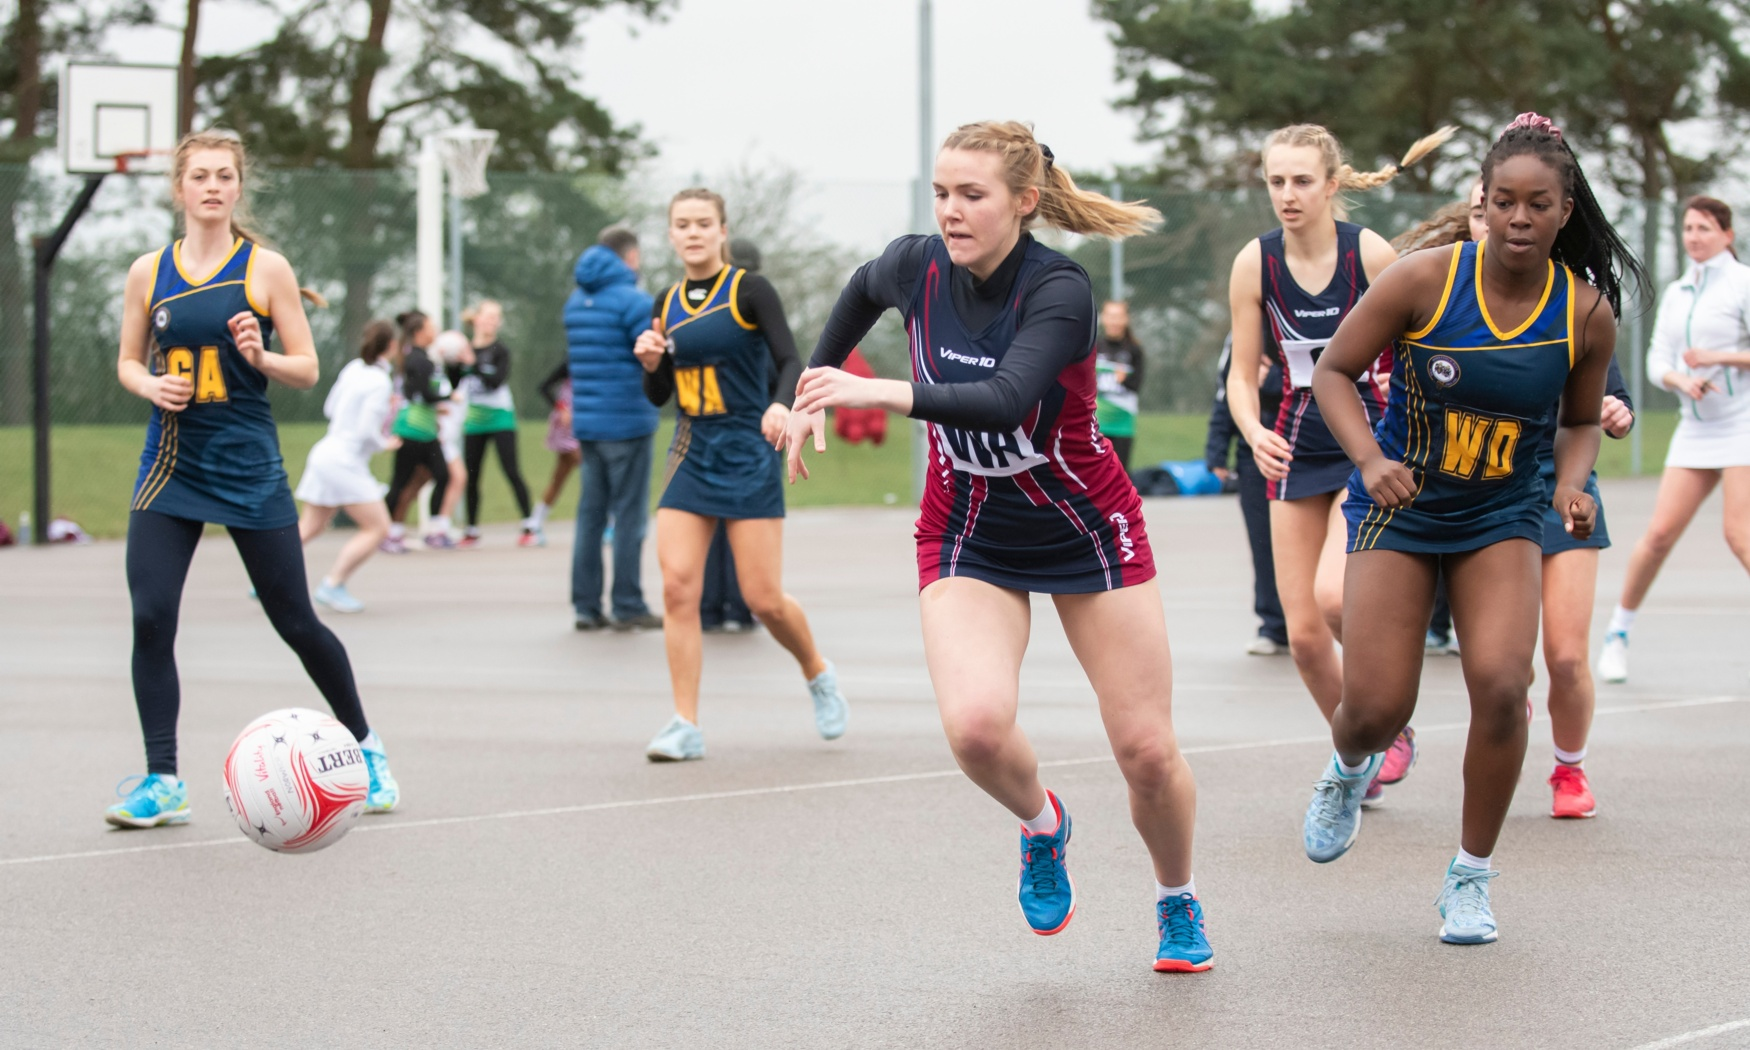 Netball Nationsal_March2019_009.jpg